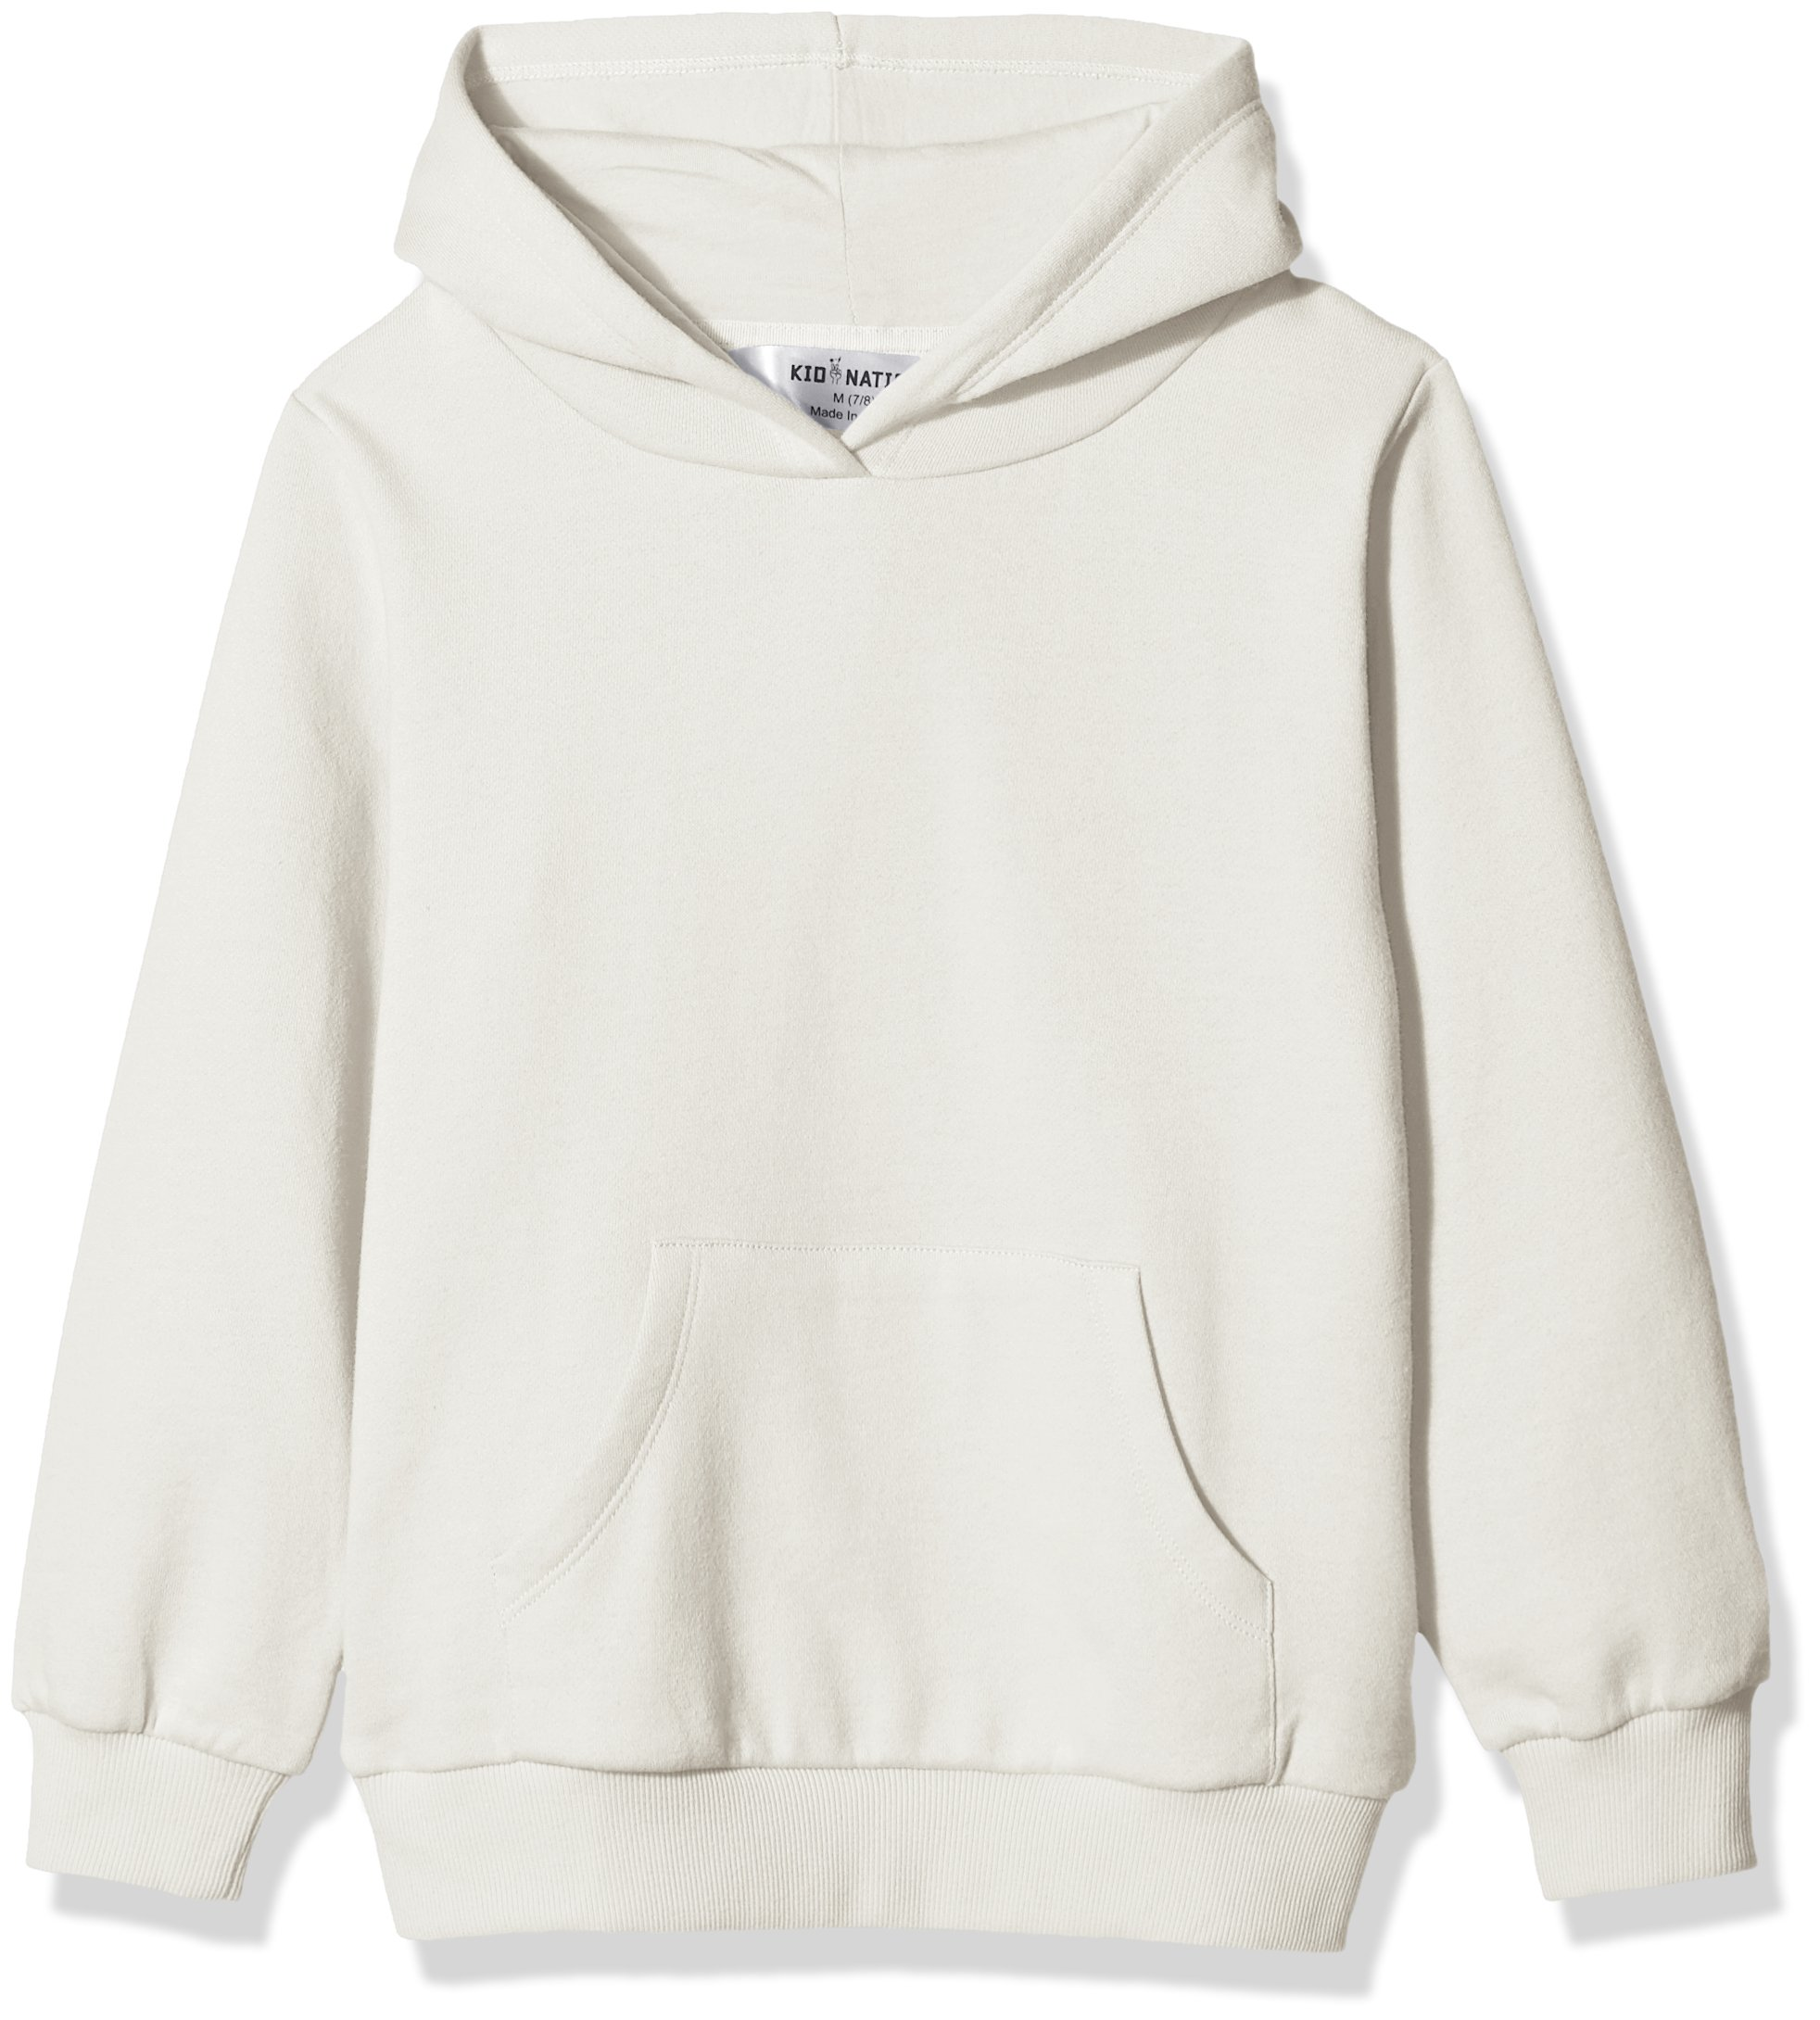 Kid Nation Kids' Solid Fleece Hooded Pullover Sweatshirt for Boys Or Girls M White